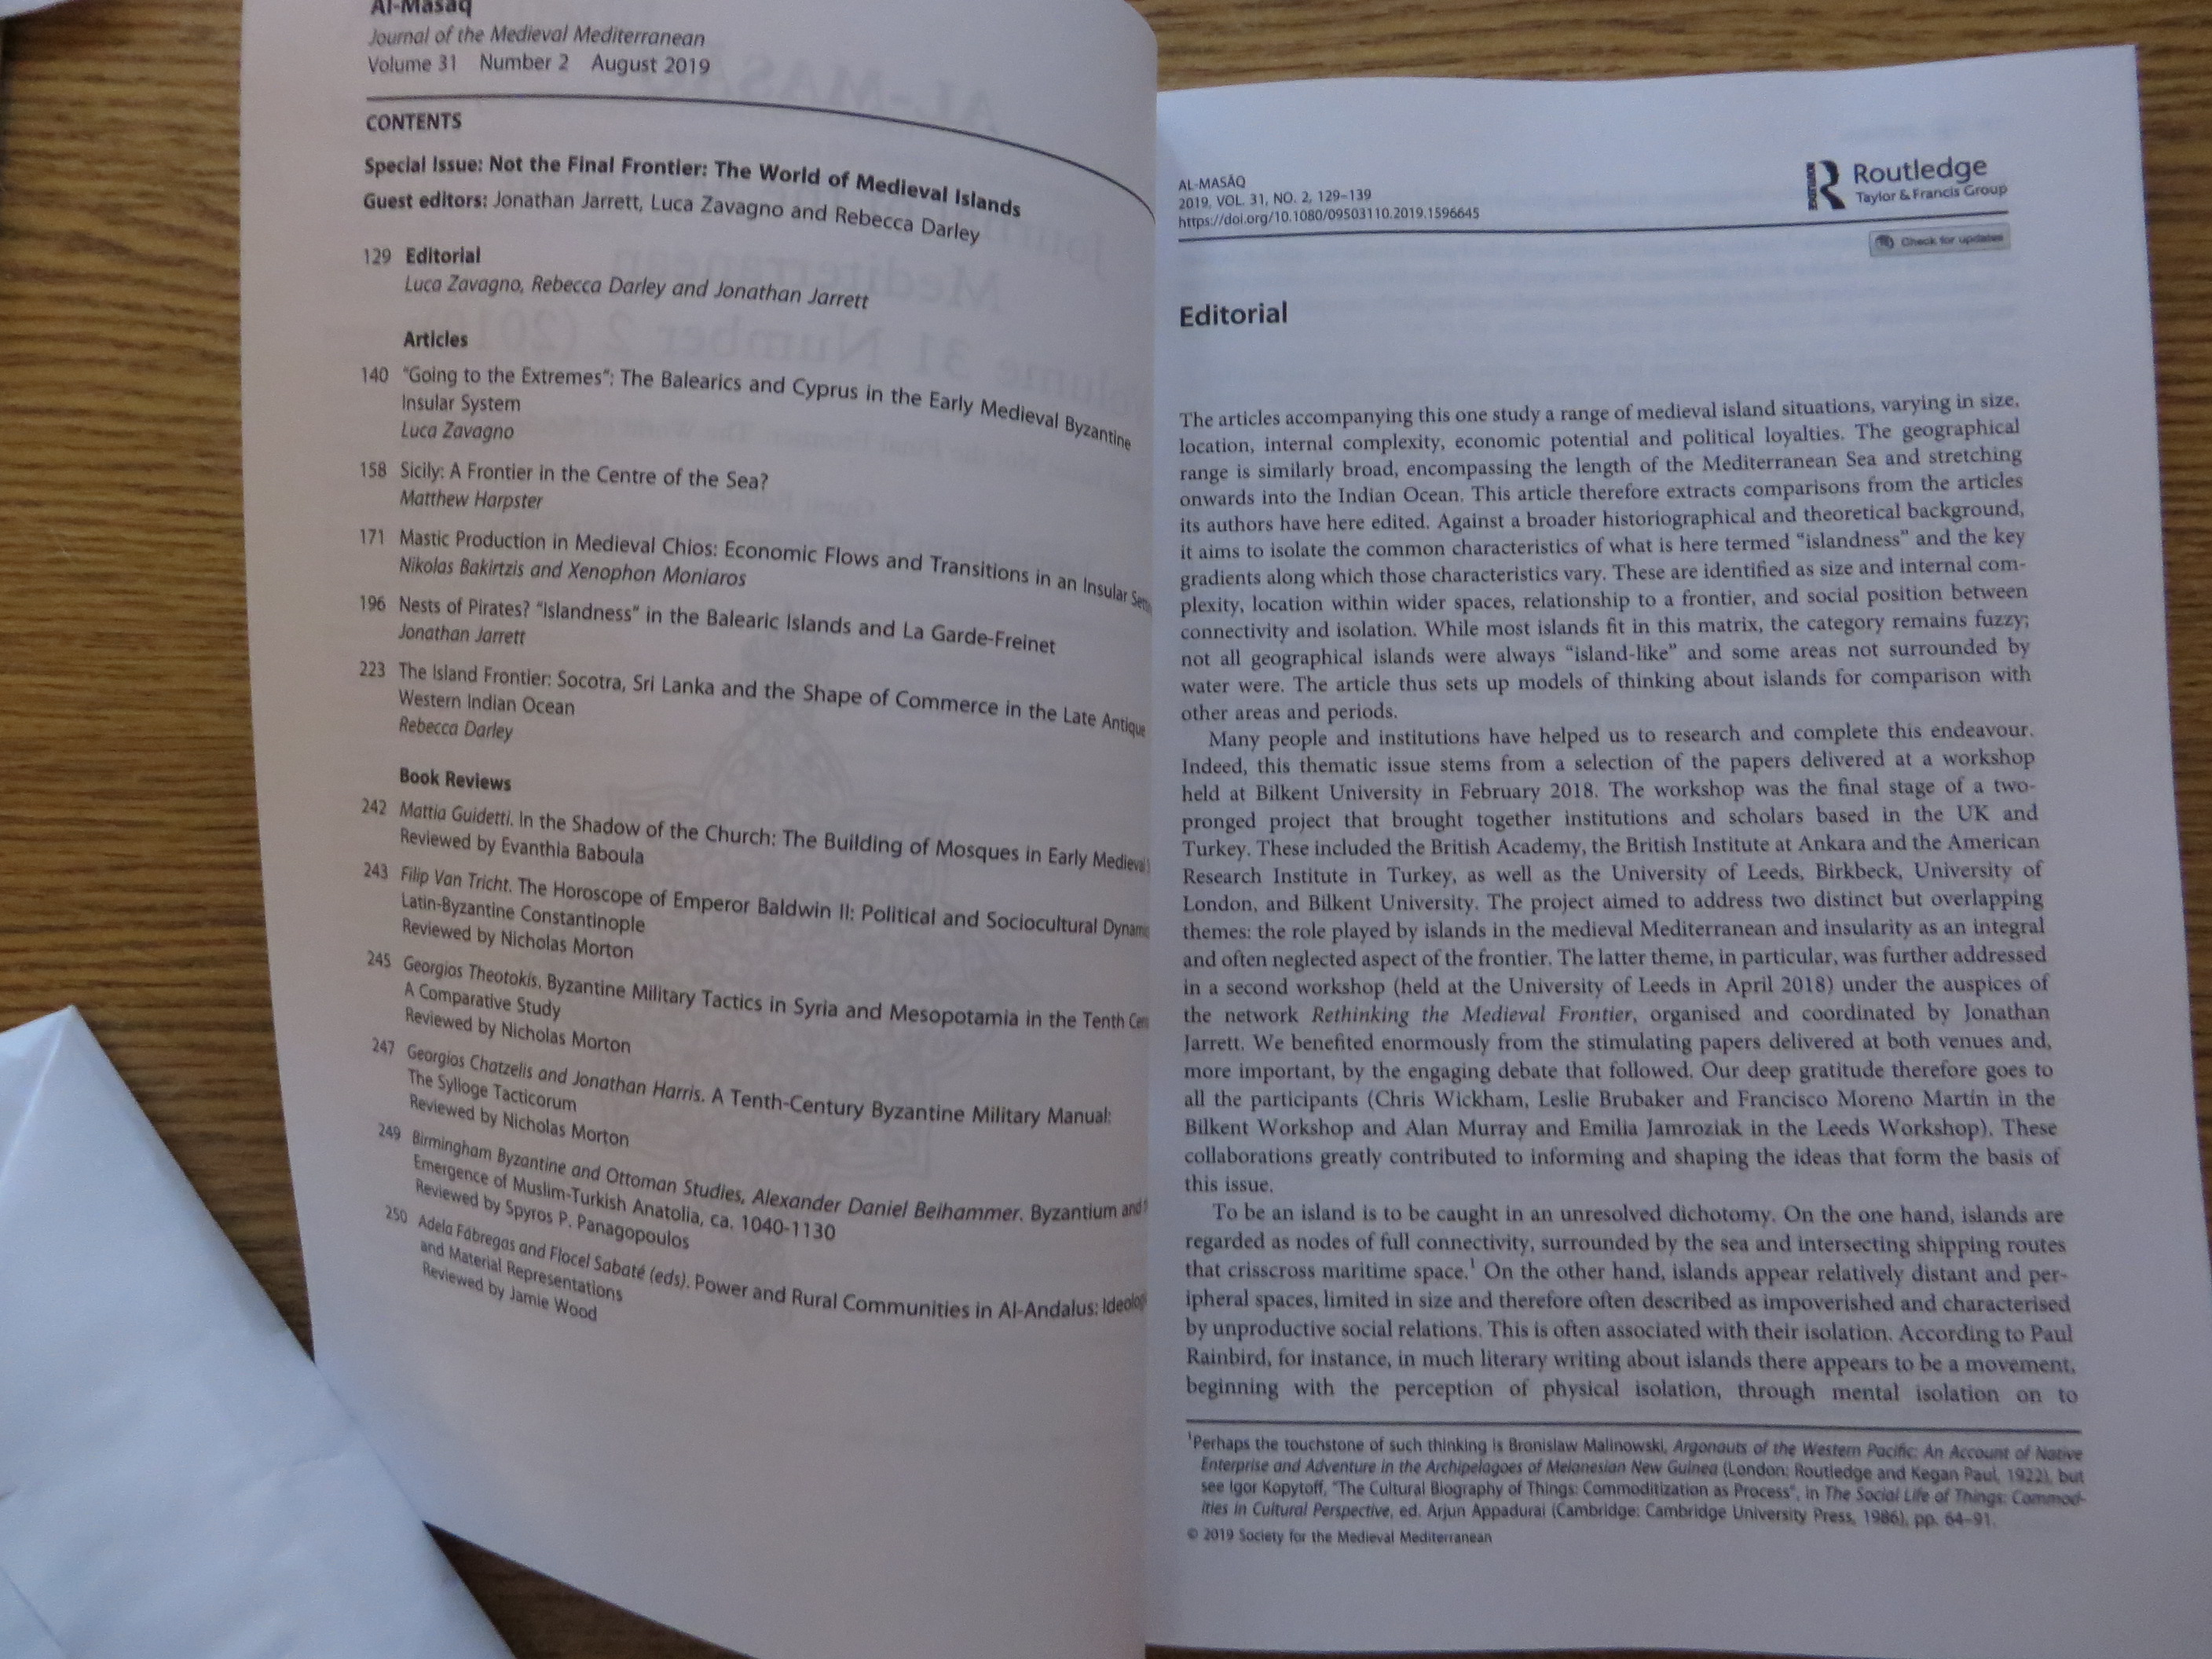 """Start page of Luca Zavagno, Jonathan Jarrett and Rebecca Darley, """"Editorial"""" in al-Masāq: Islam and the Medieval Mediterranean Vol. 31.2, 'Not the Final Frontier': The World of Medieval Islands (Abingdon 2019), 129–39, DOI: 10.1080/09503110.2019.1596645"""